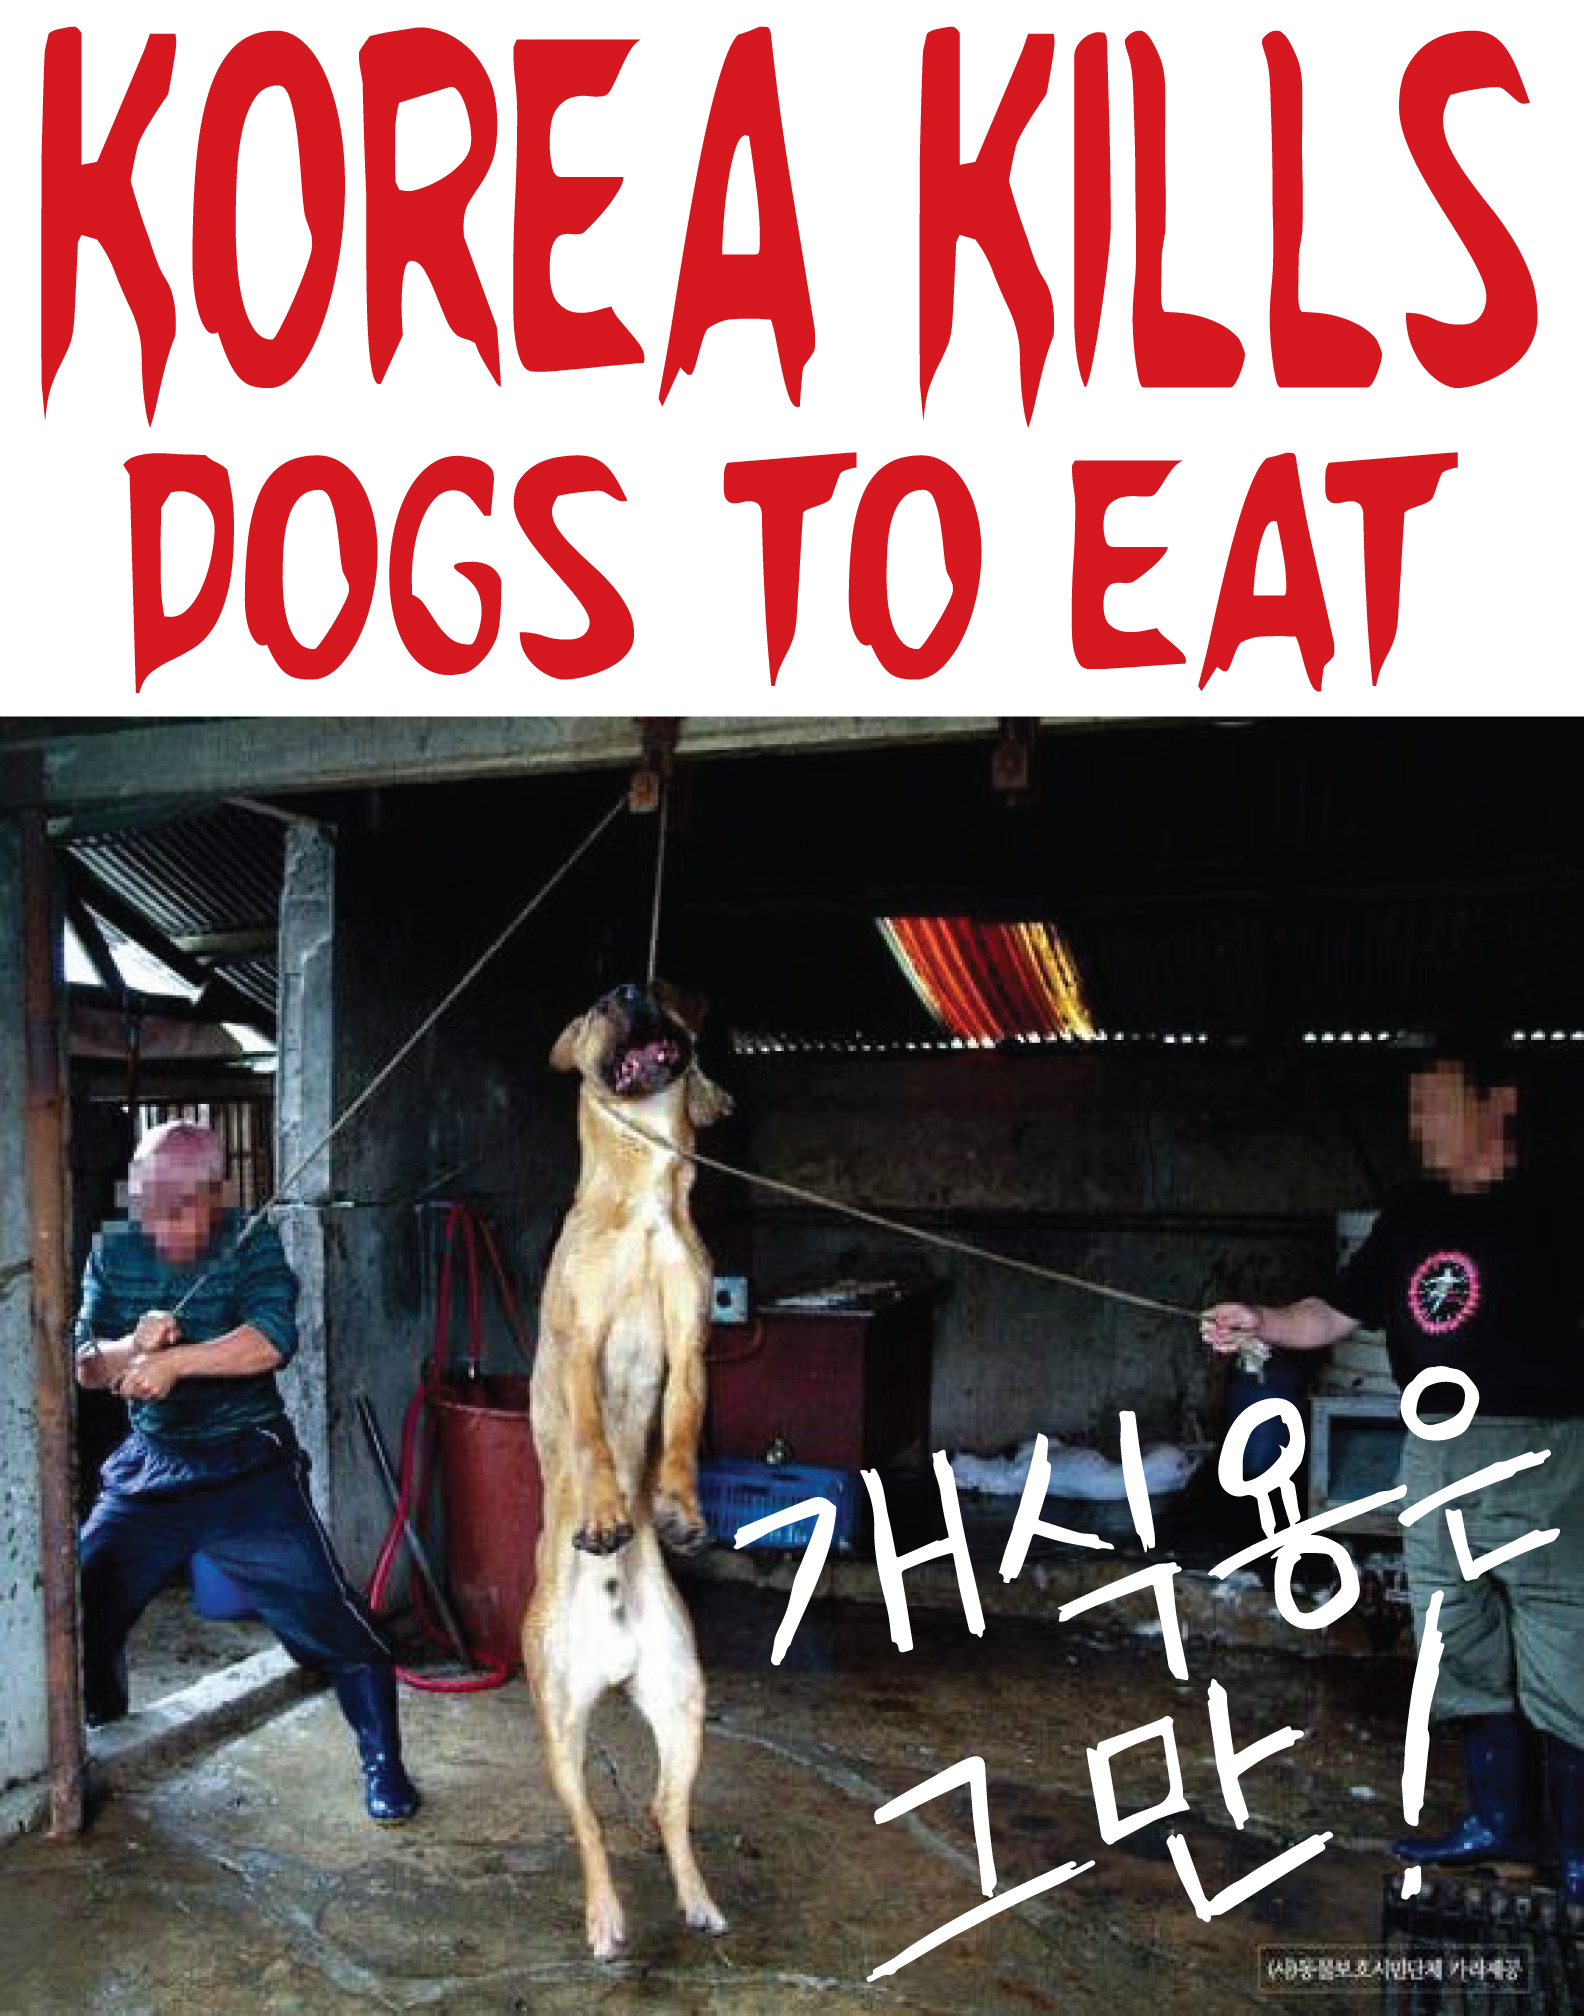 US sales: Korea Kills Dogs Protest Sign